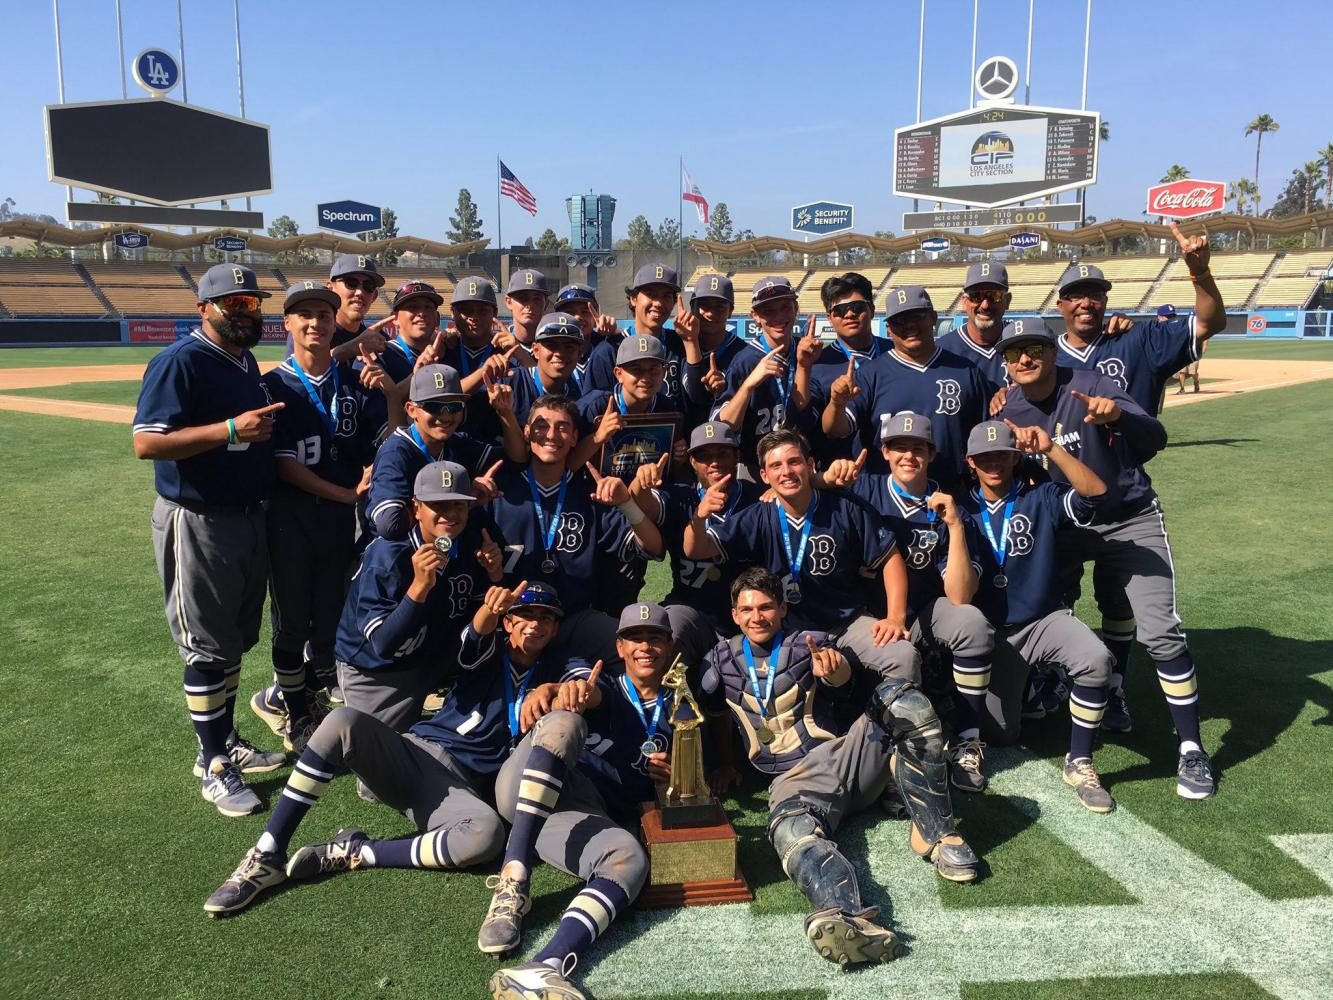 2016-2017  CIF Division 1 Los Angeles City Baseball Champions